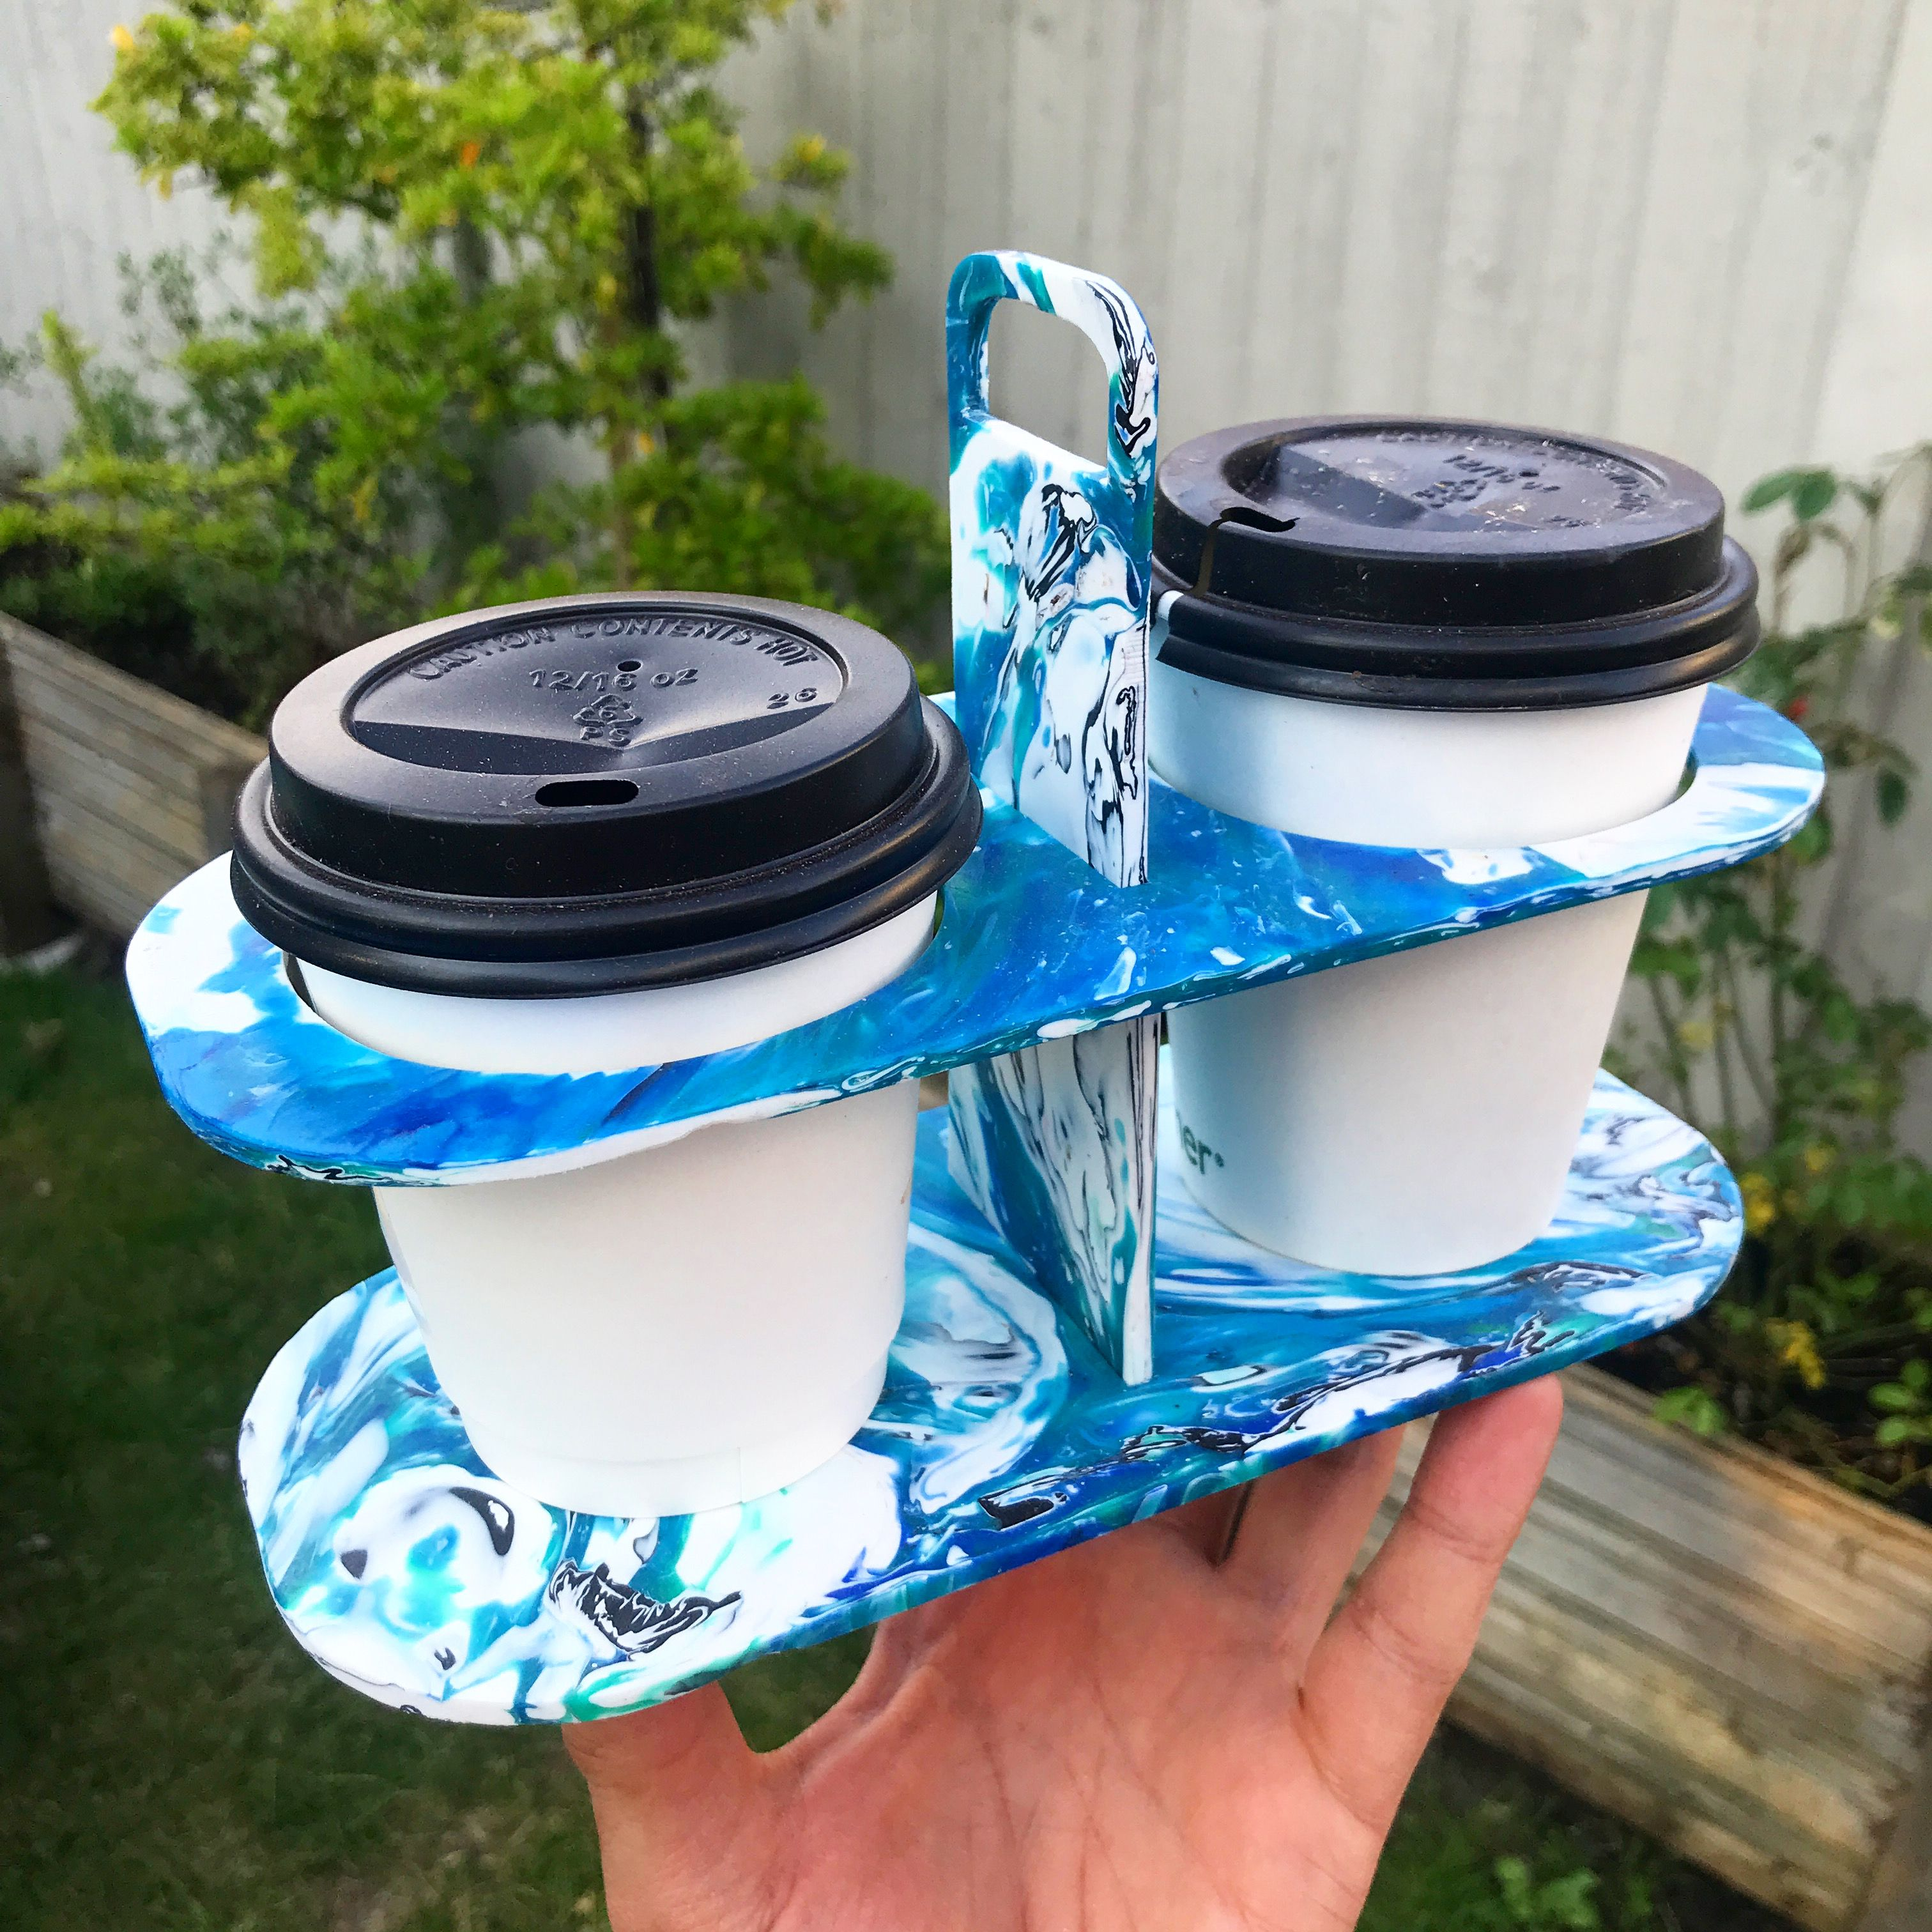 RECYCLED PLASTIC Coffee Cup Carrier in 2020 Recycled